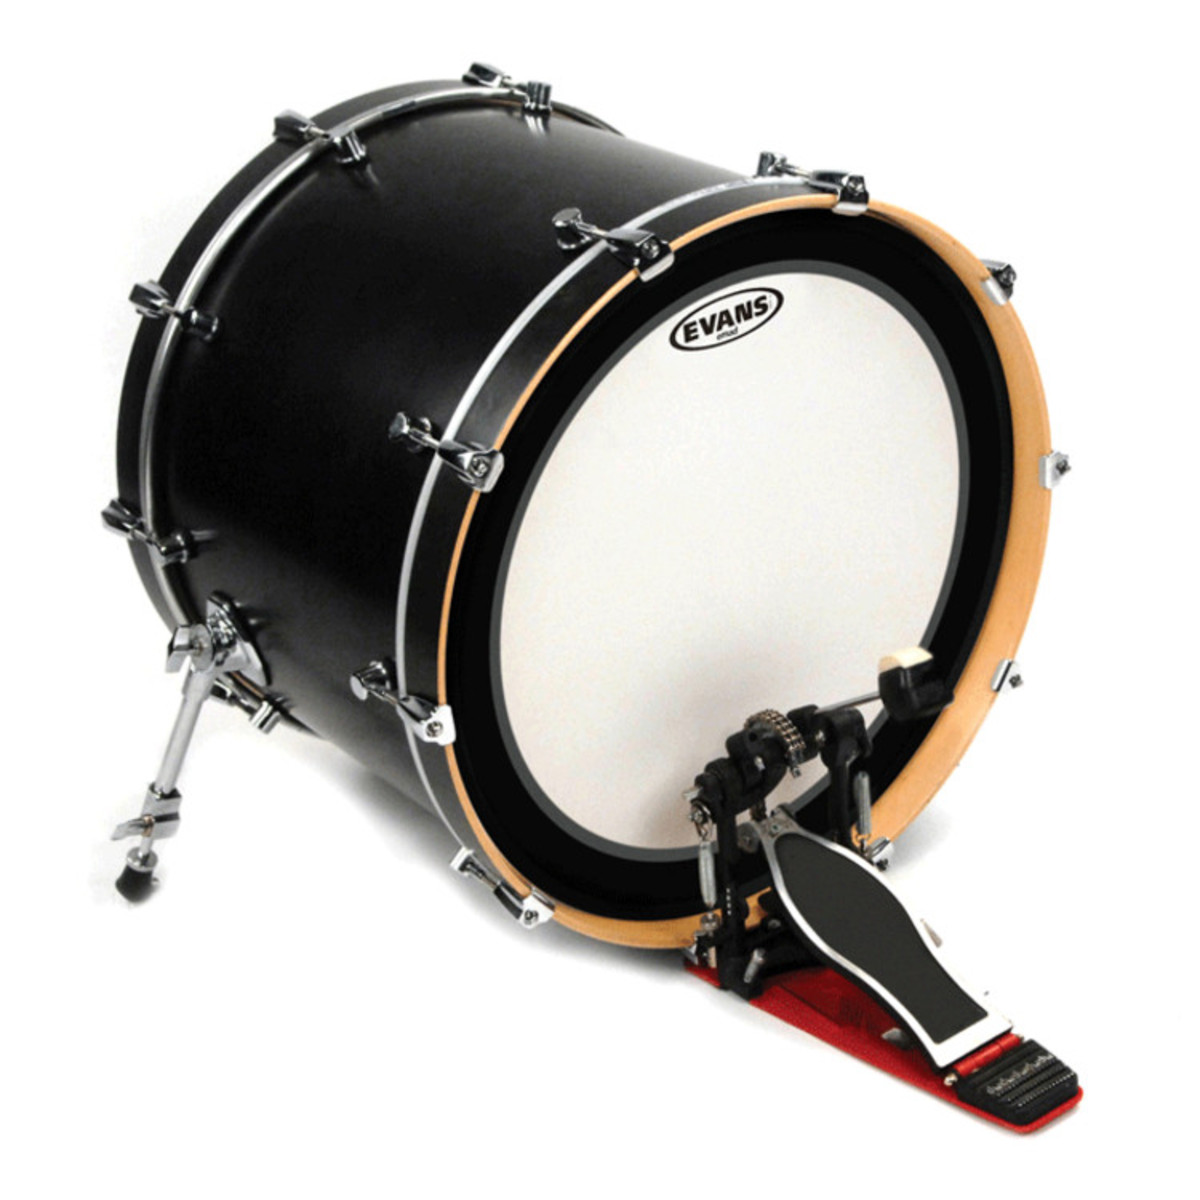 evans emad2 clear bass drum head 24 inch box opened at. Black Bedroom Furniture Sets. Home Design Ideas